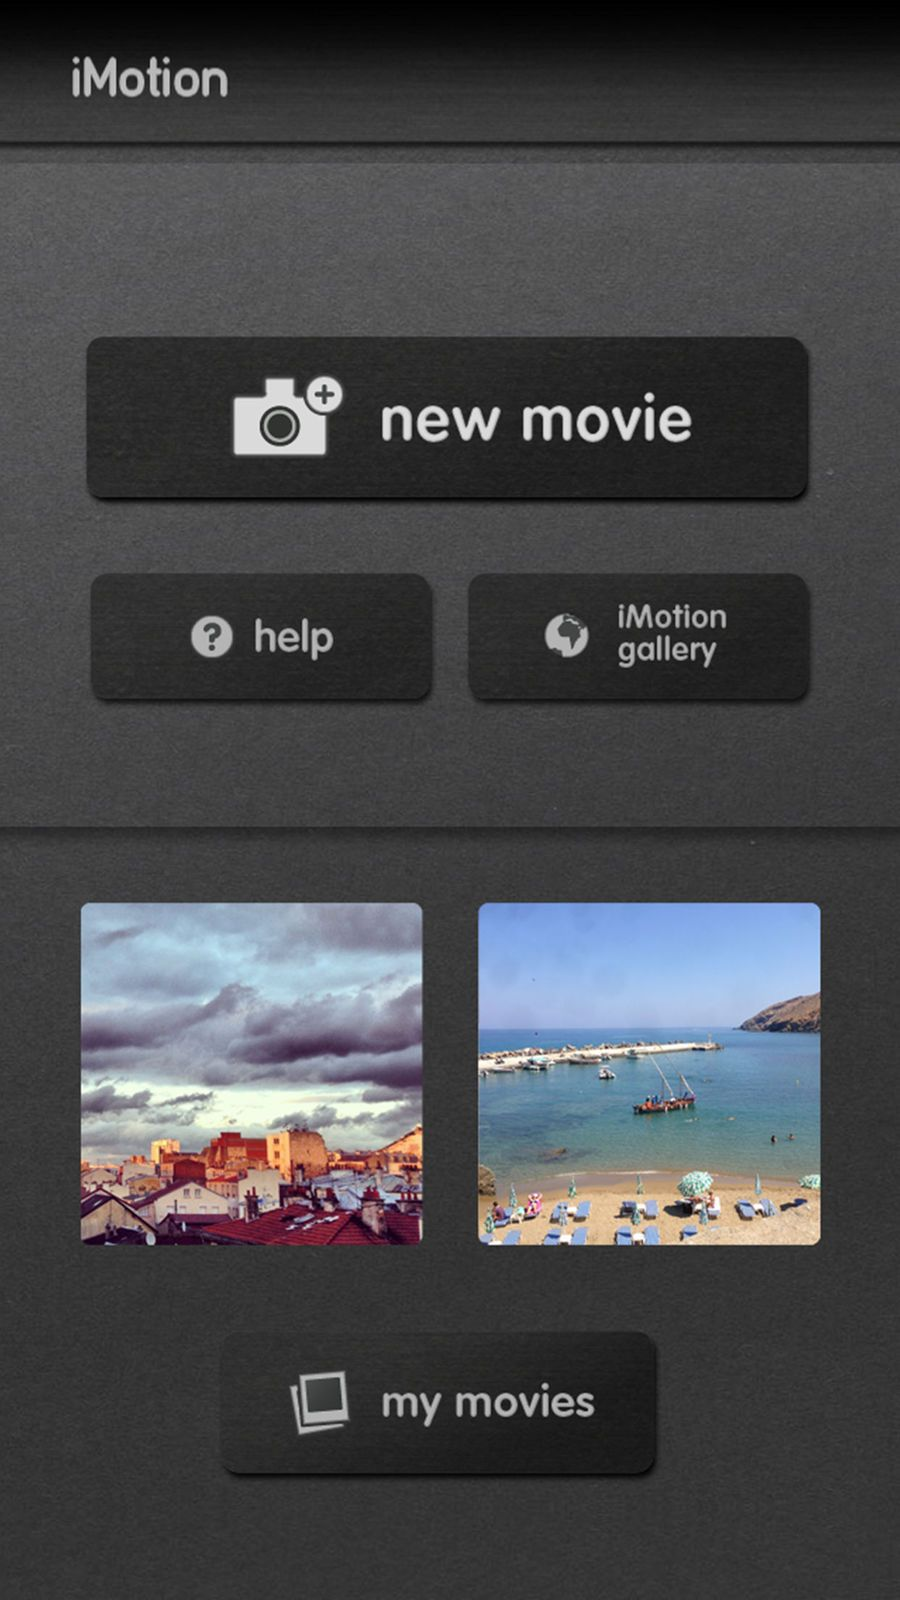 iMotion EntertainmentVideoappsios Video app, Iphone